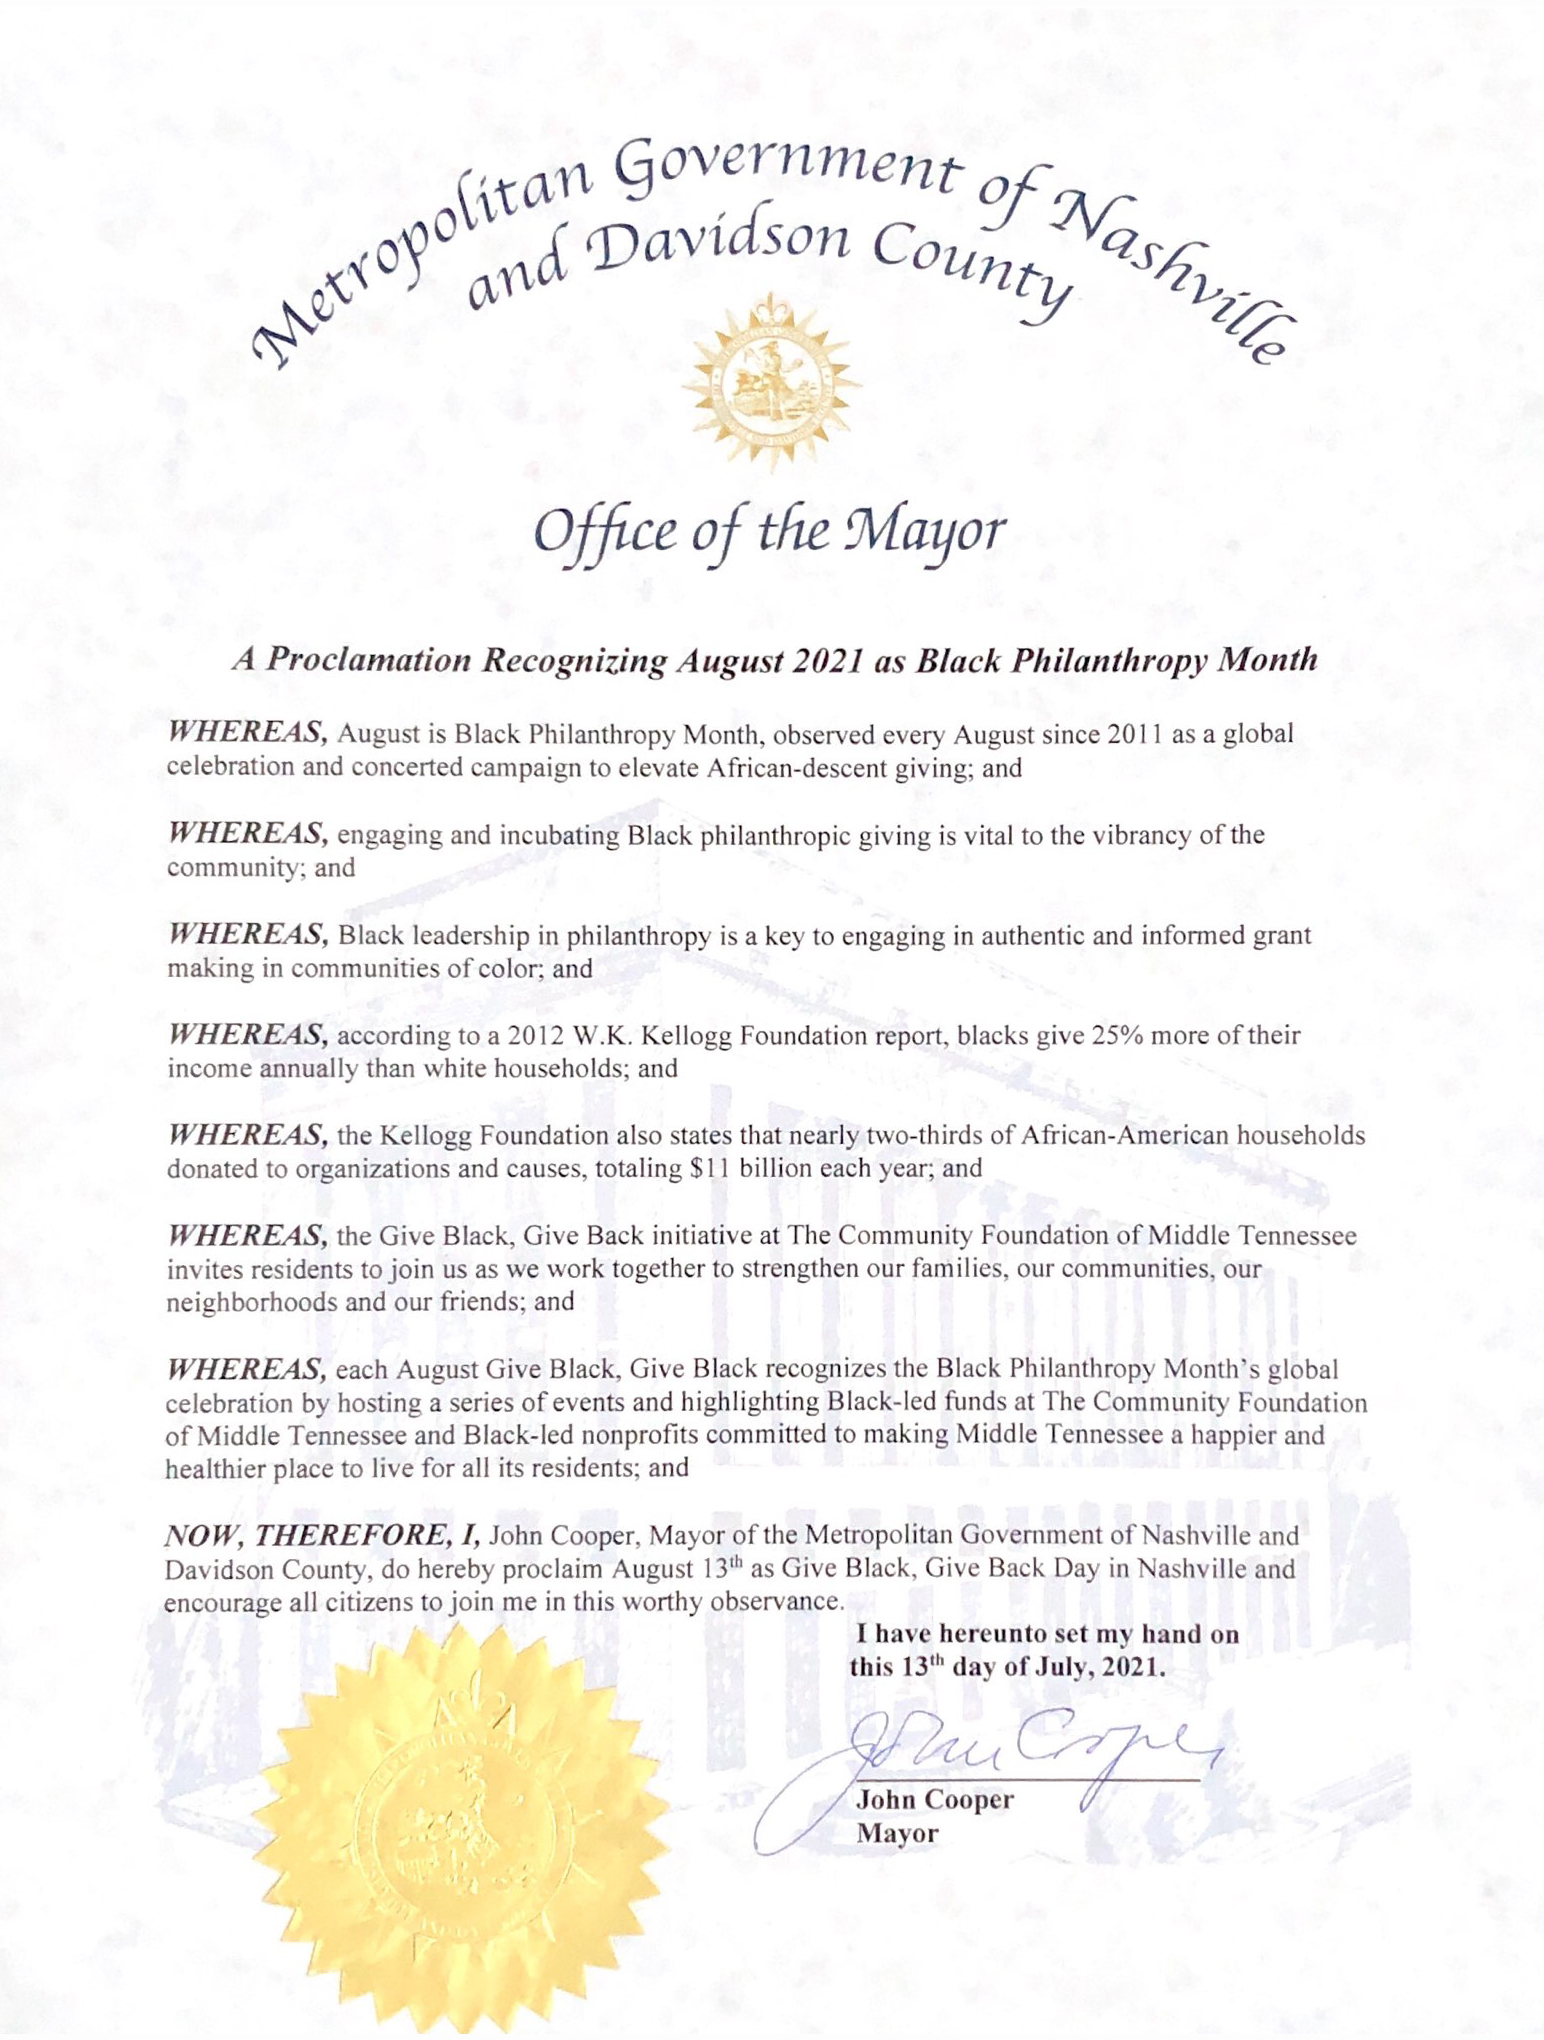 Office of the Mayor - Give Black, Give Back Proclamation